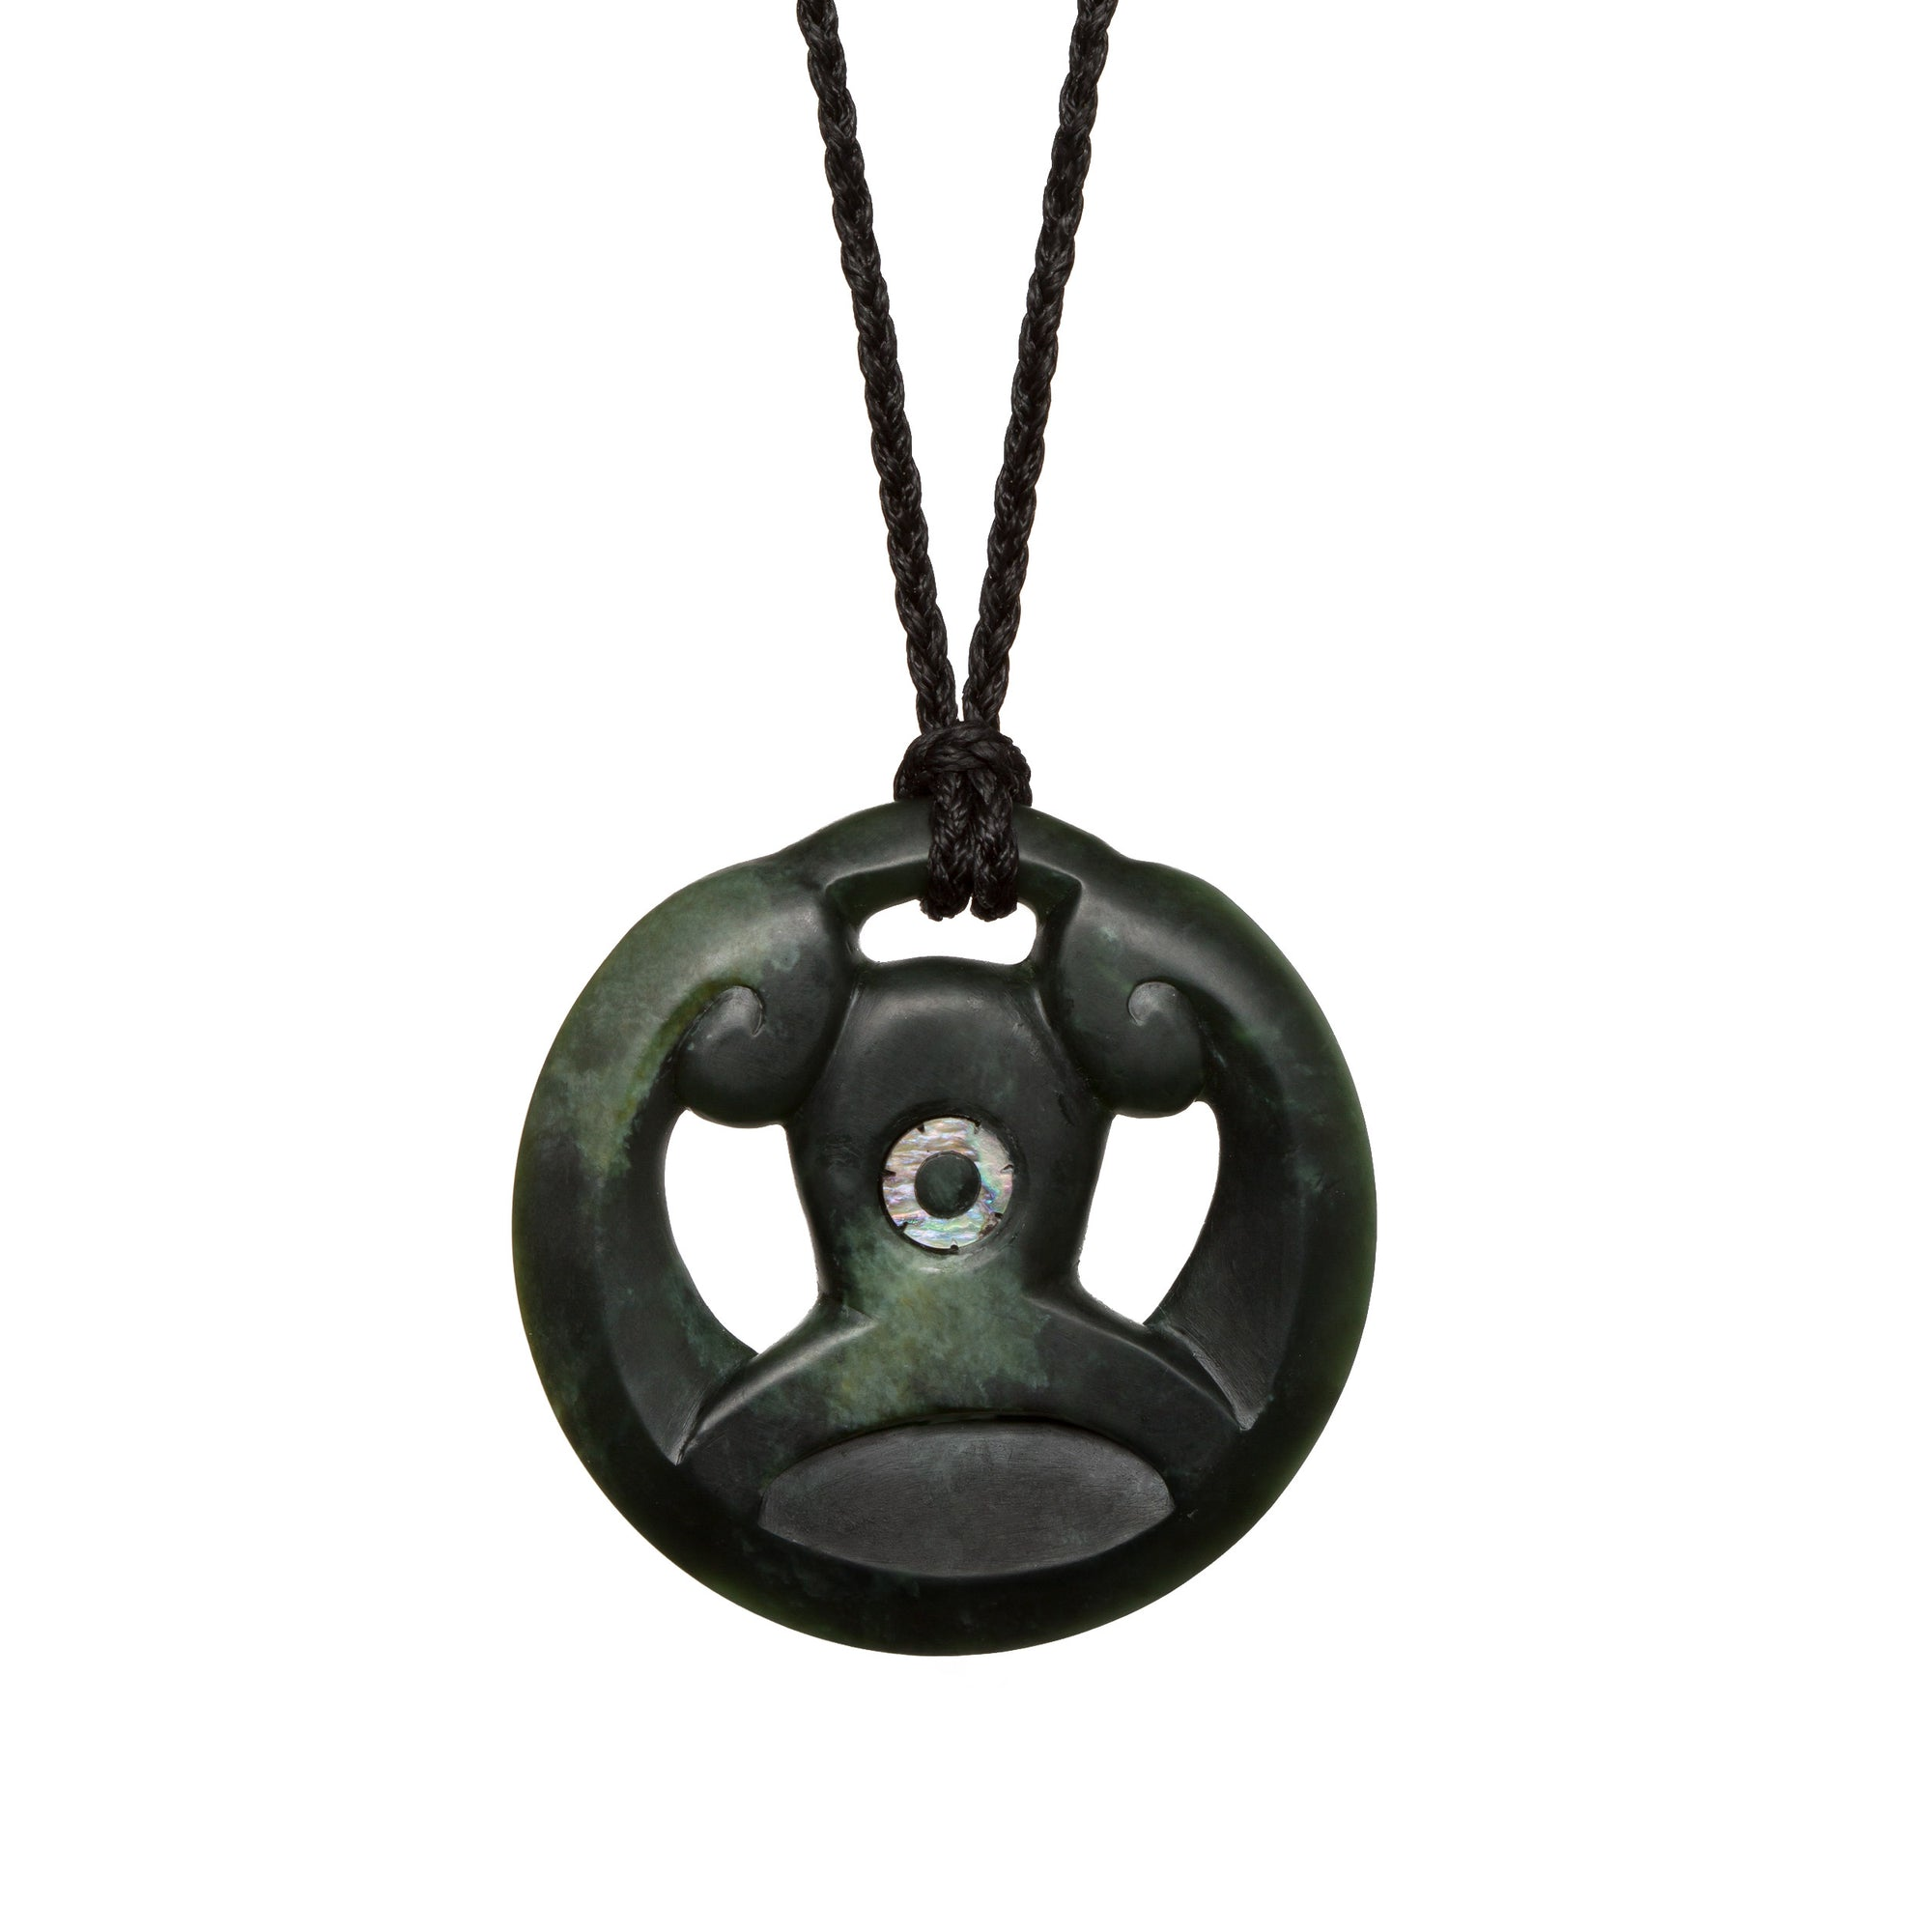 New Zealand Greenstone Manaia Koru Necklace